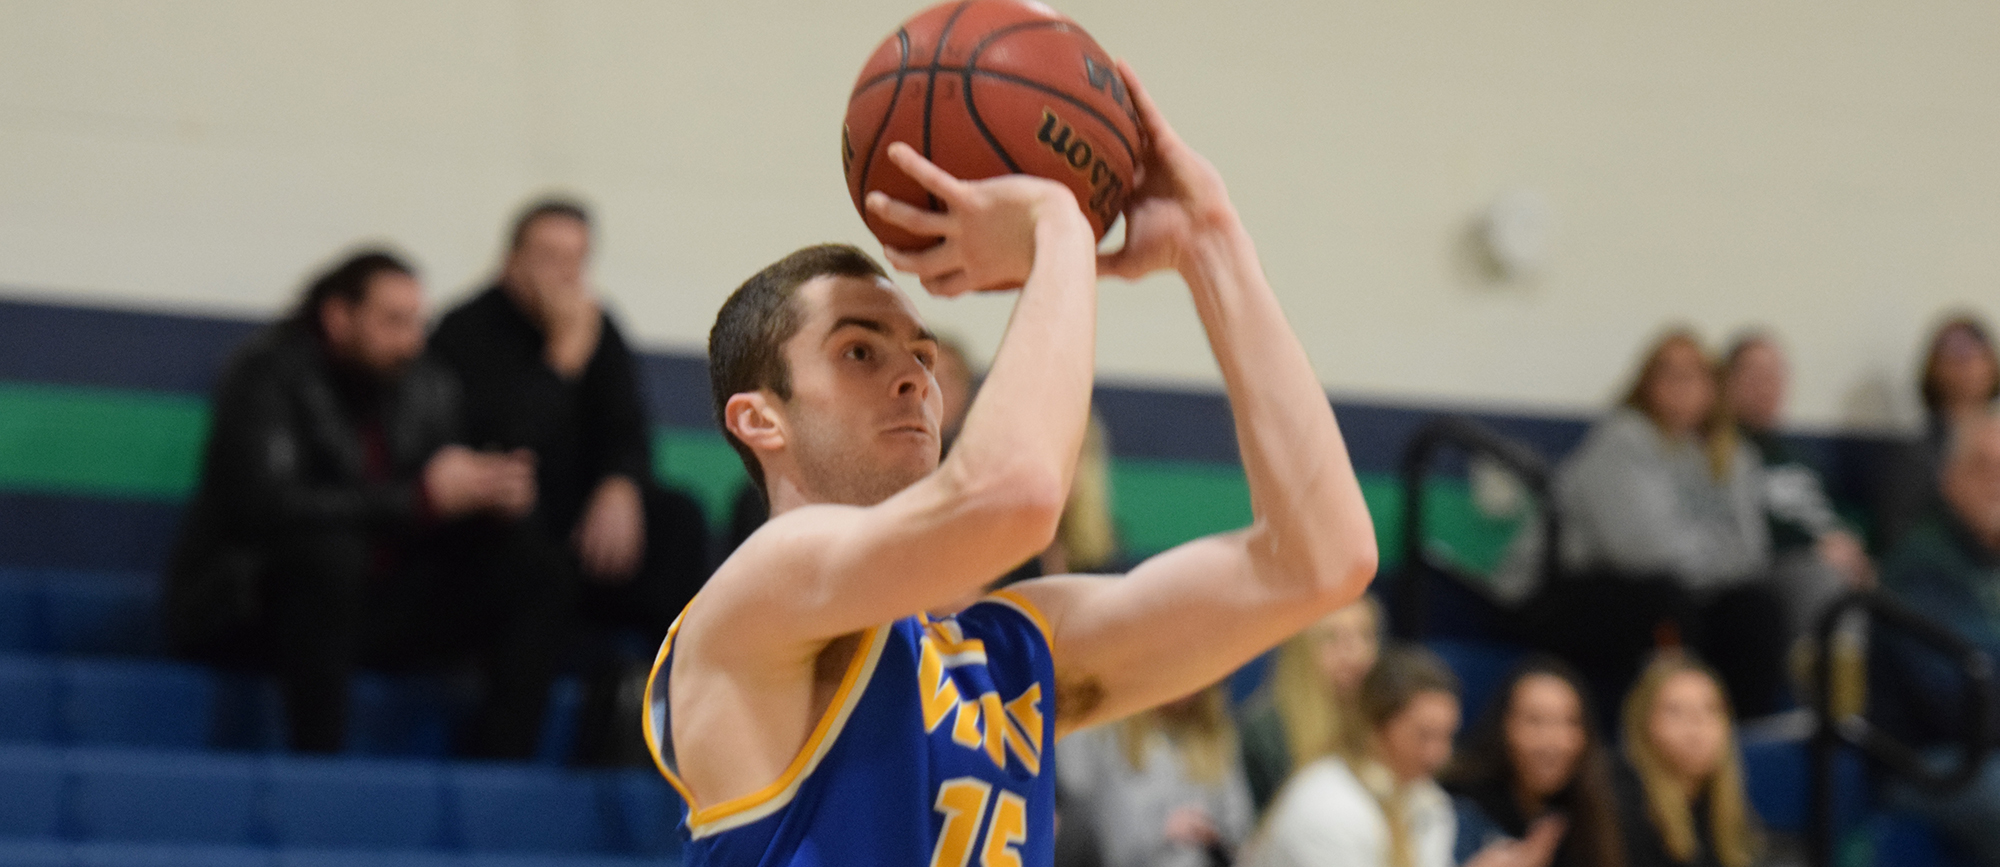 Junior Mike McGuire was among five double-figure scorers with 18 points in Western New England's 97-79 win over Wentworth on Tuesday. (Photo by Rachael Margossian)